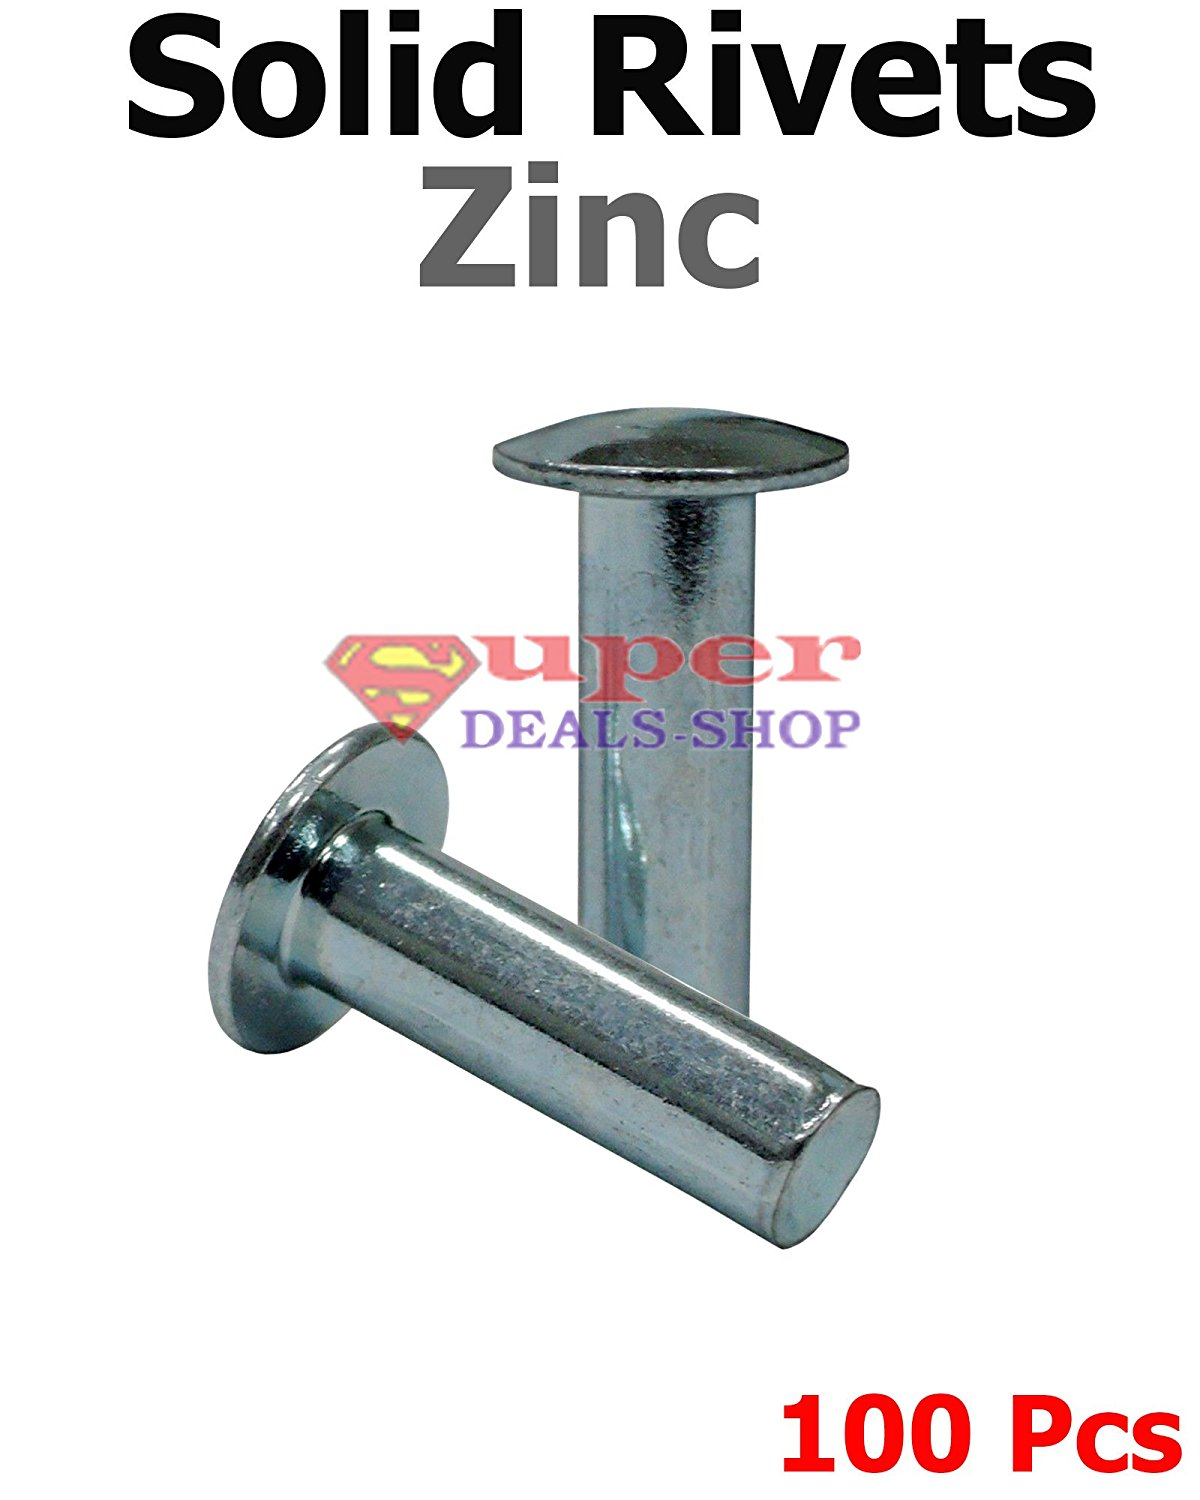 ALSO INCLUDES 2 SQ-3-17 FLUSH SQUEEZER DIES. 1-1//4 GAP WITH A 3 REACH WILL SET RIVETS UP TO 1 INCH IN LENGTH 3//16 HEIGHT DIAMETER HAND RIVET SQUEEZER FOR SOLID /& TUBULAR RIVETS